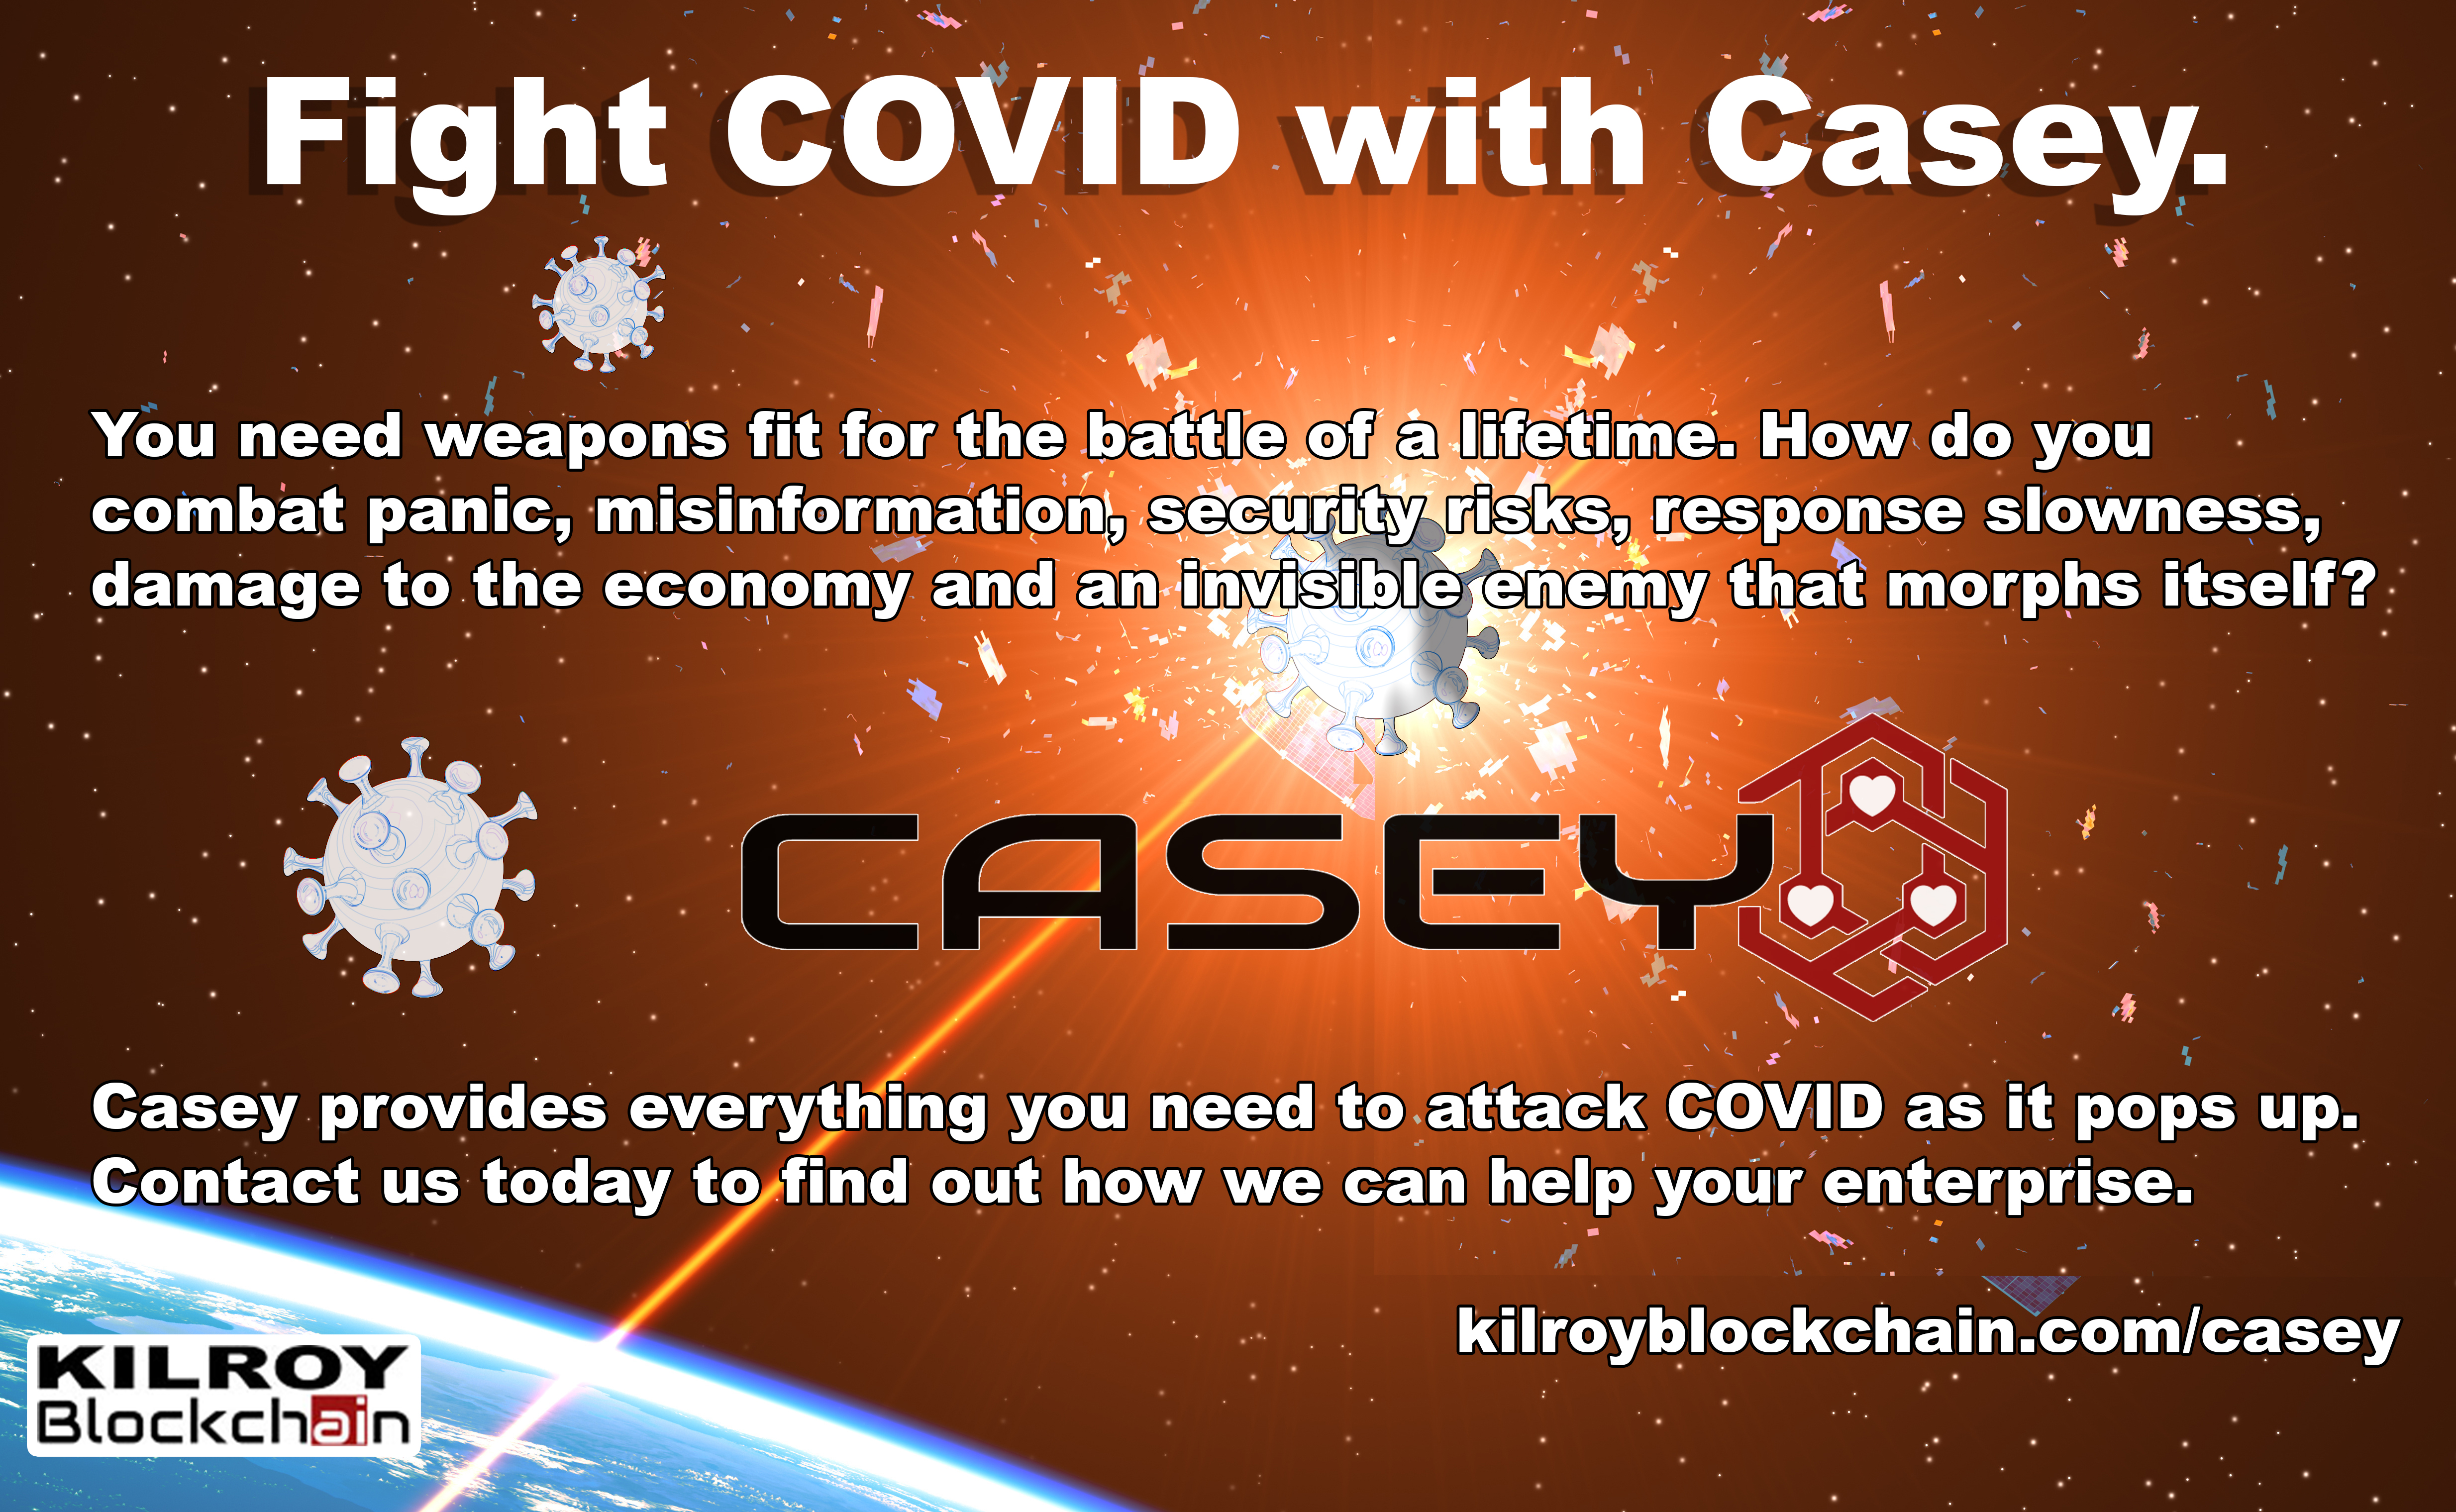 Fight COVID with Casey by Kilroy Blockchain